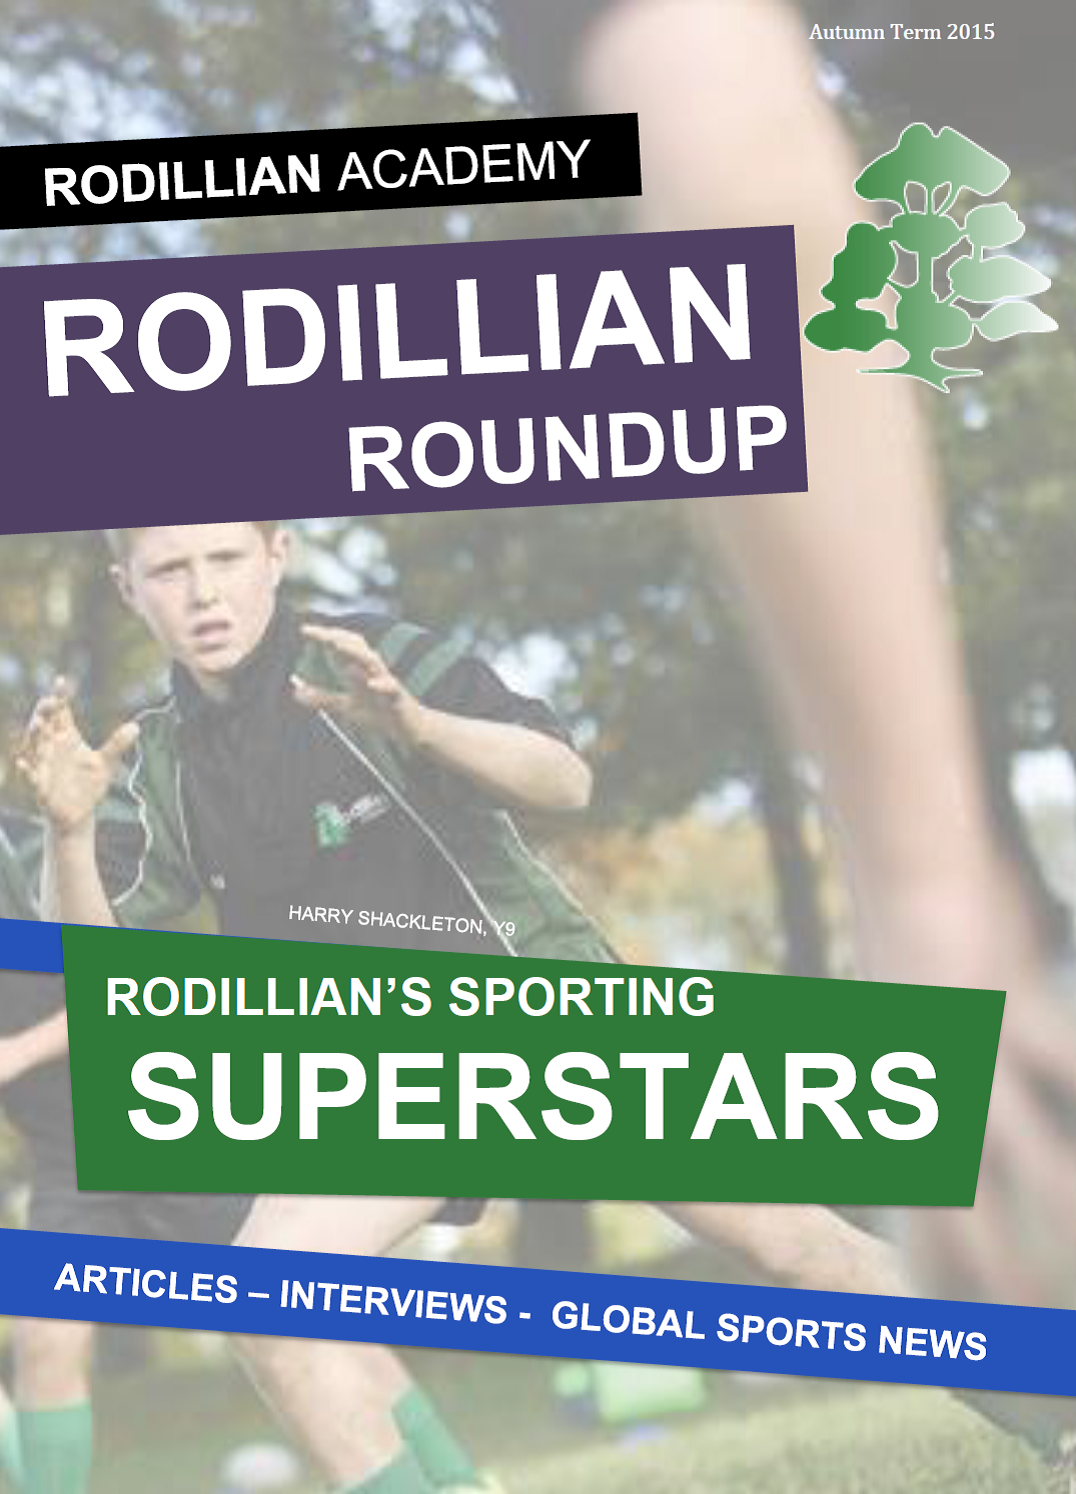 RODILLIAN Round up - Issue 3